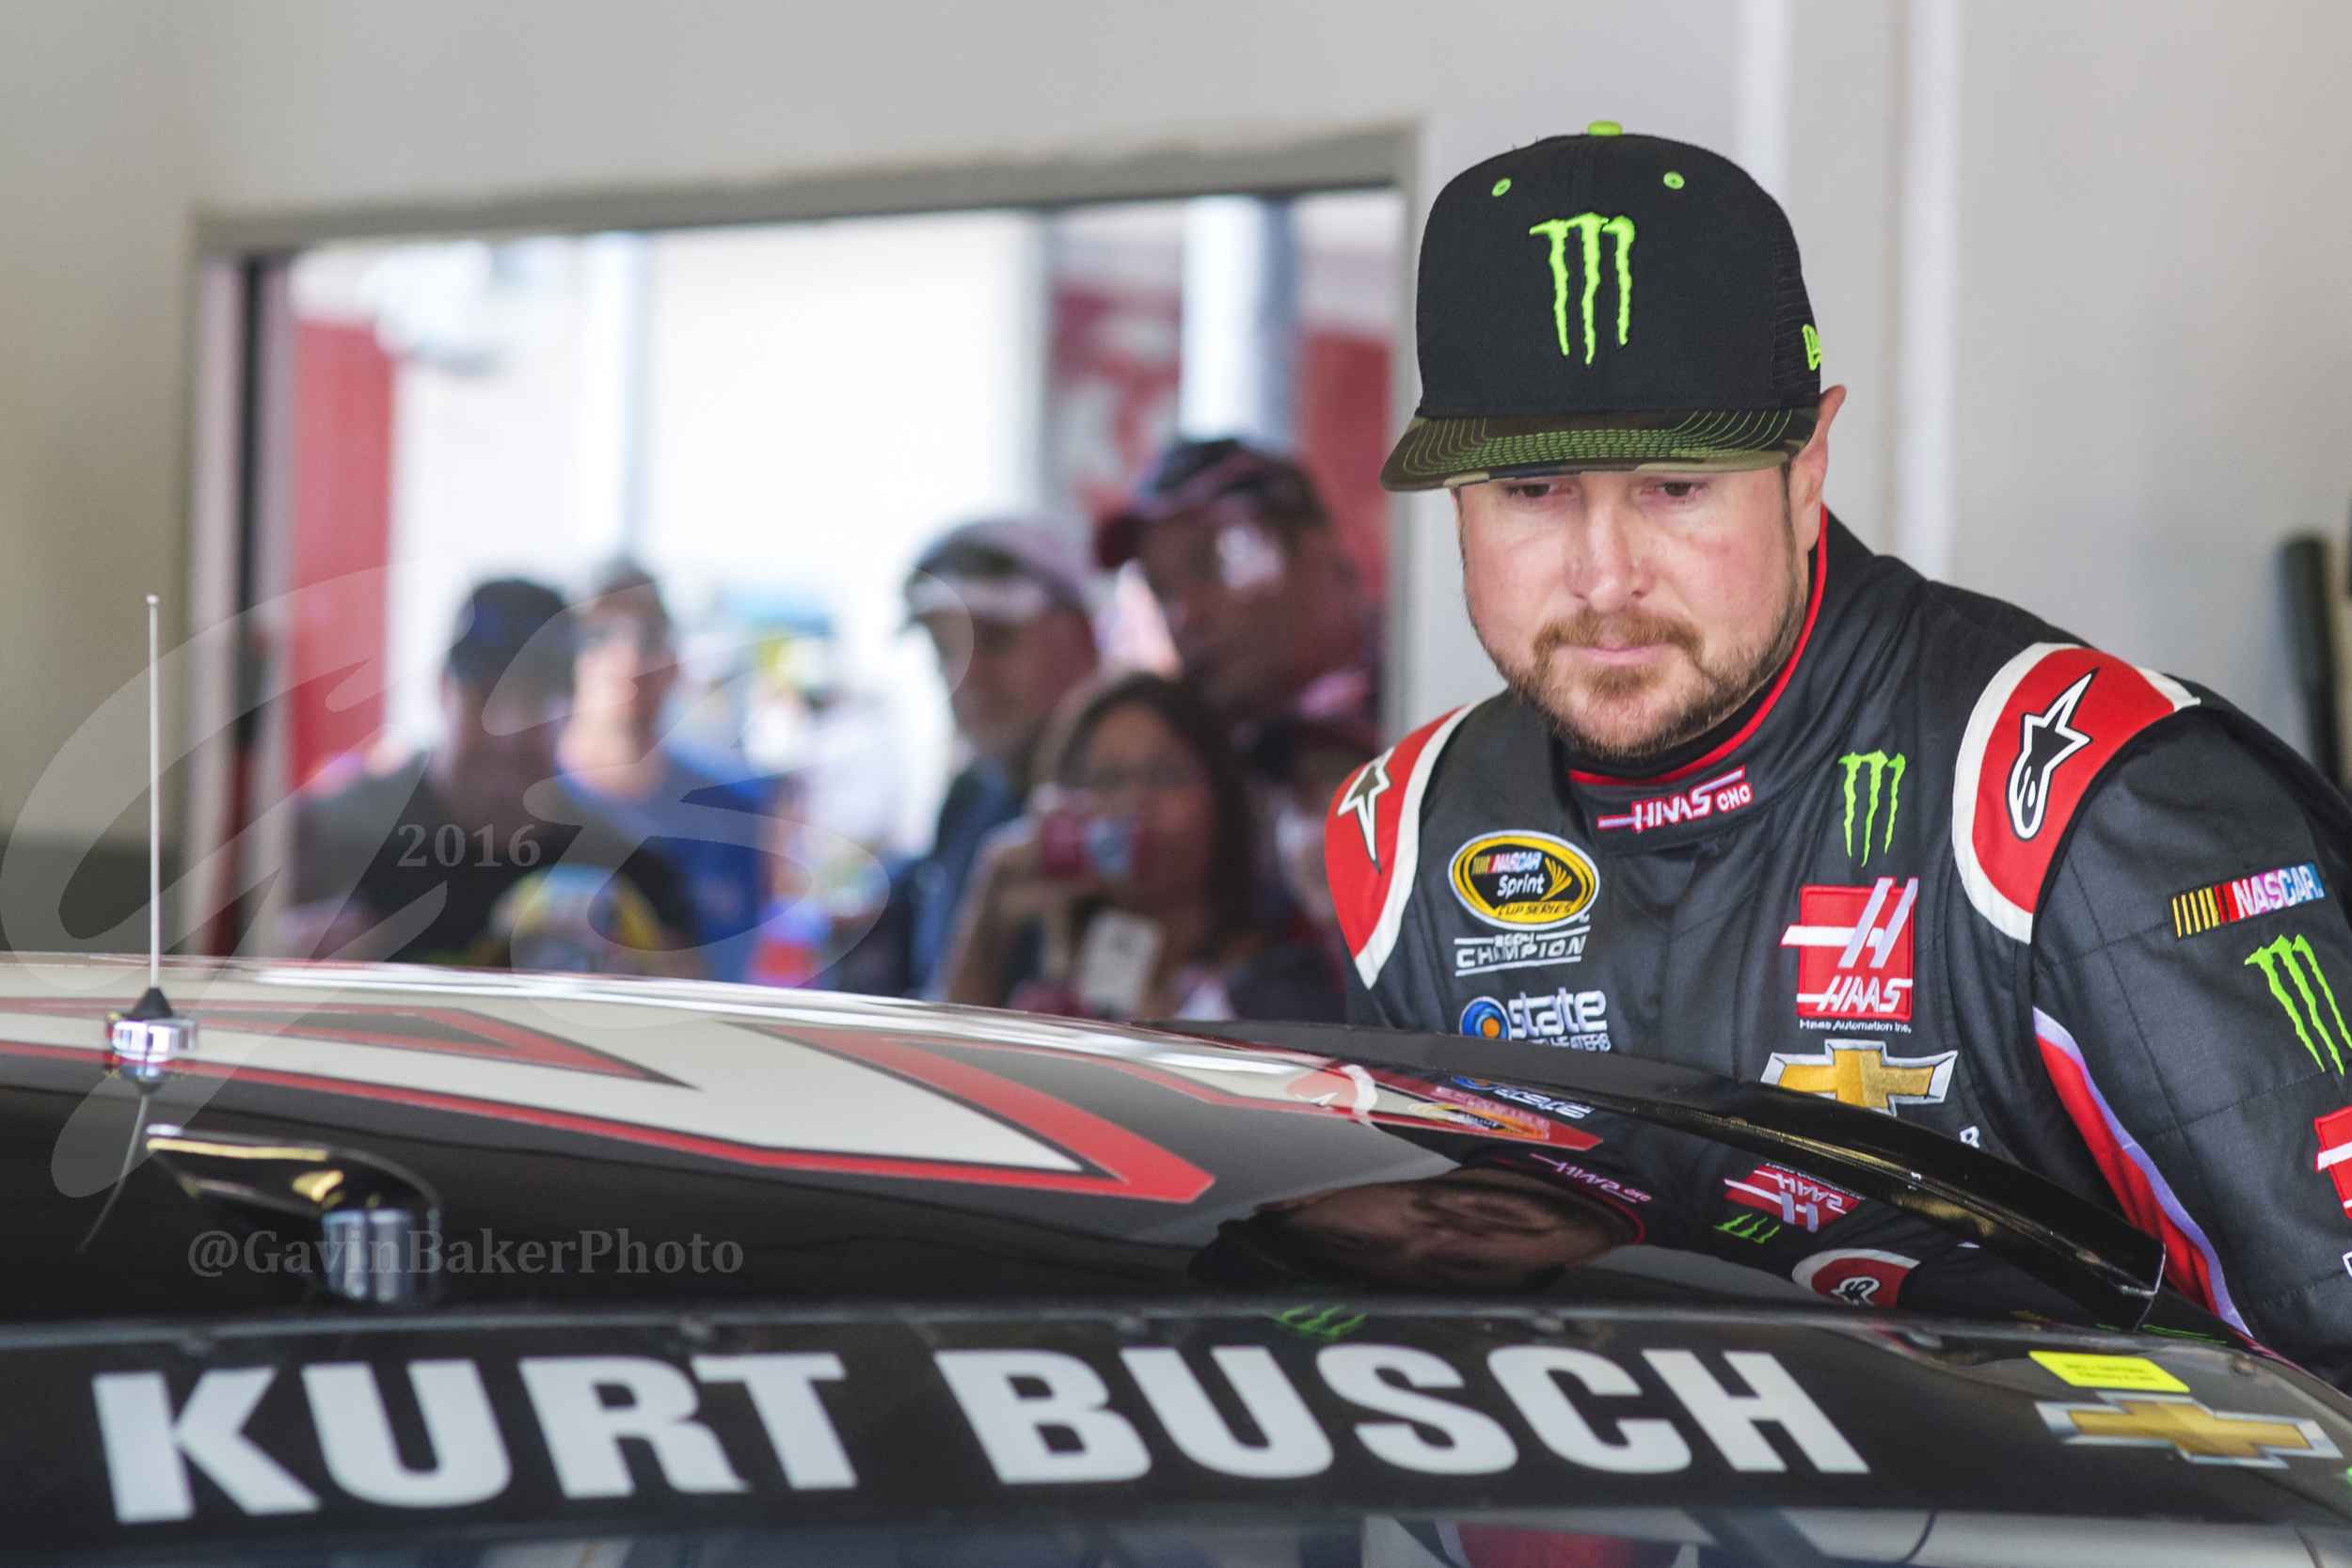 Fans look on and snap pictures from behind the viewing area of the garage as Kurt Busch climbs into his racecar